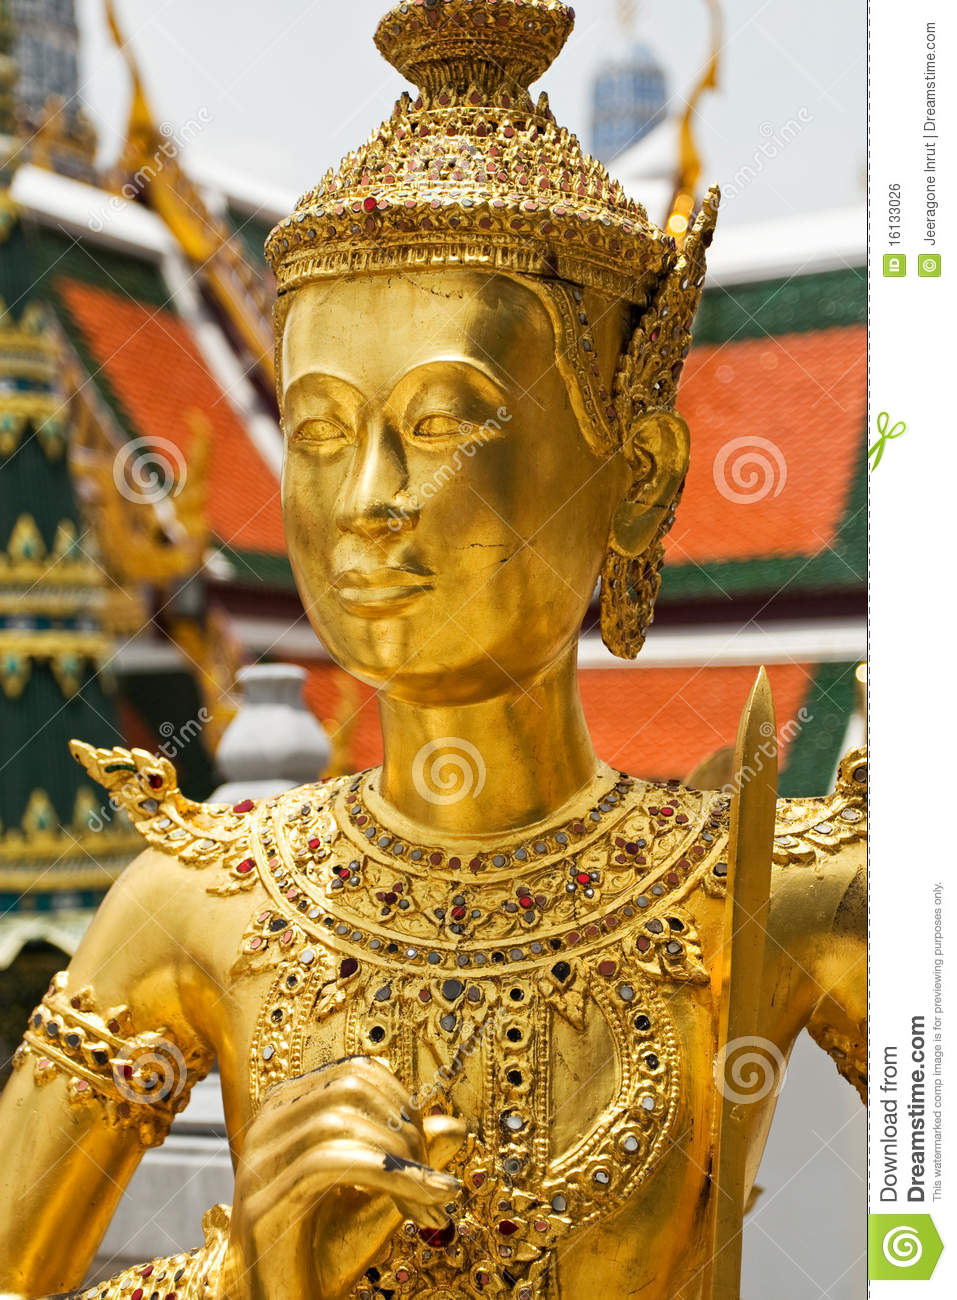 Statue In Grand Palace Royalty Free Stock Image - Image ...